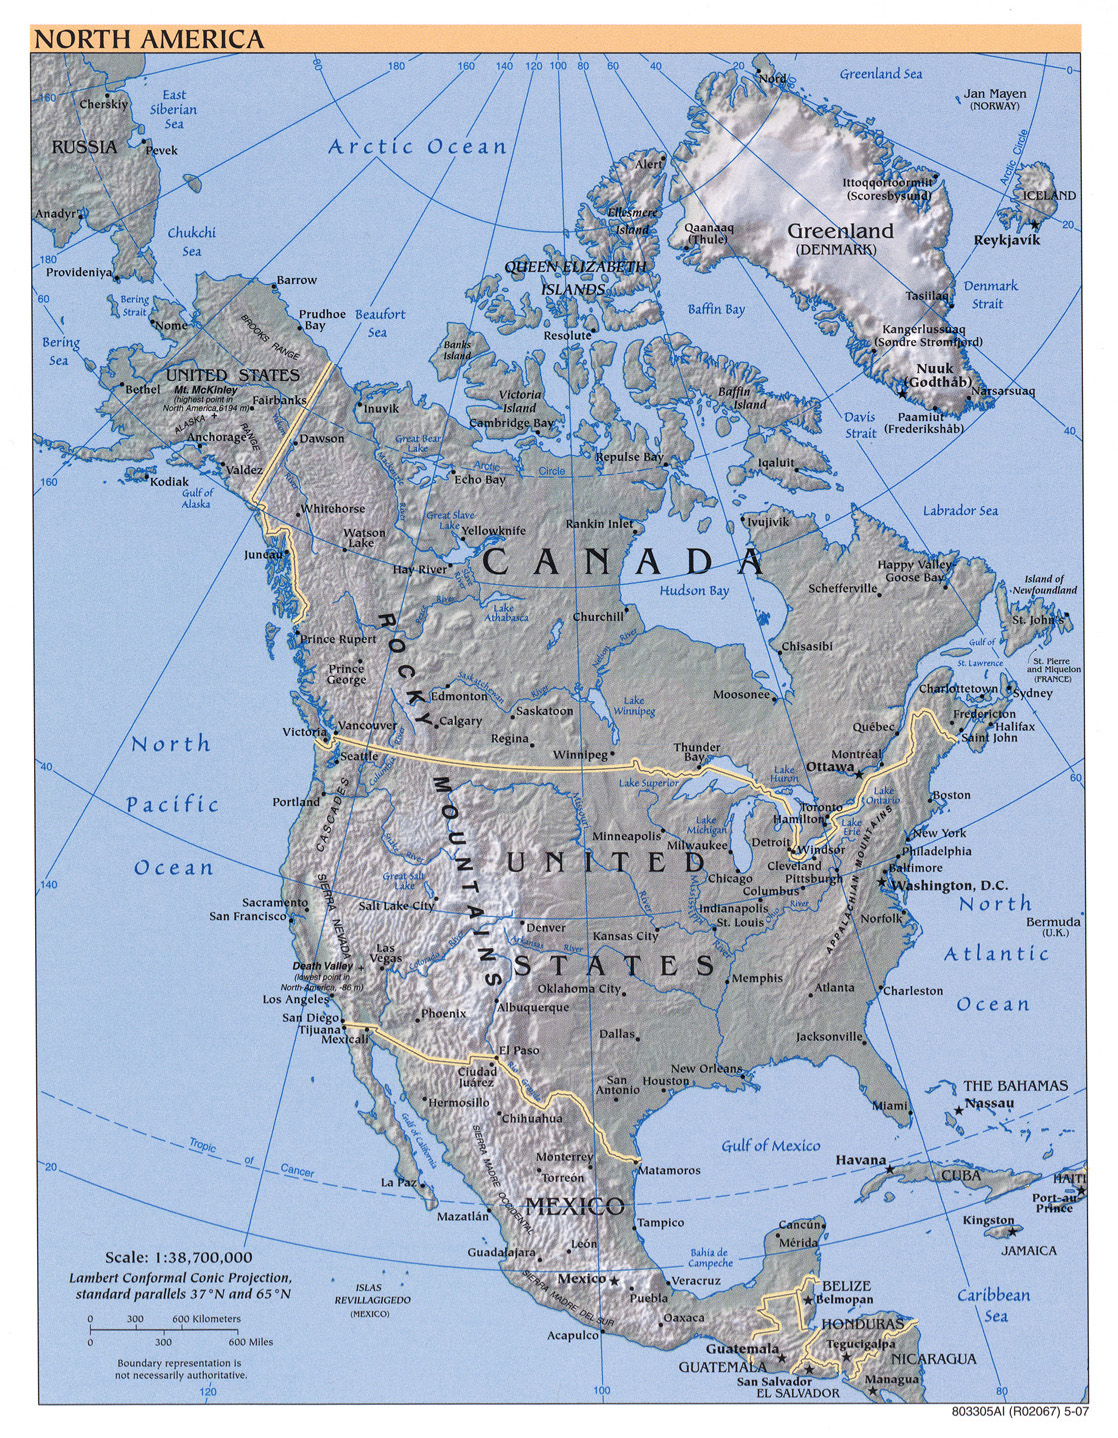 Free download americas maps download free americas maps gumiabroncs Gallery